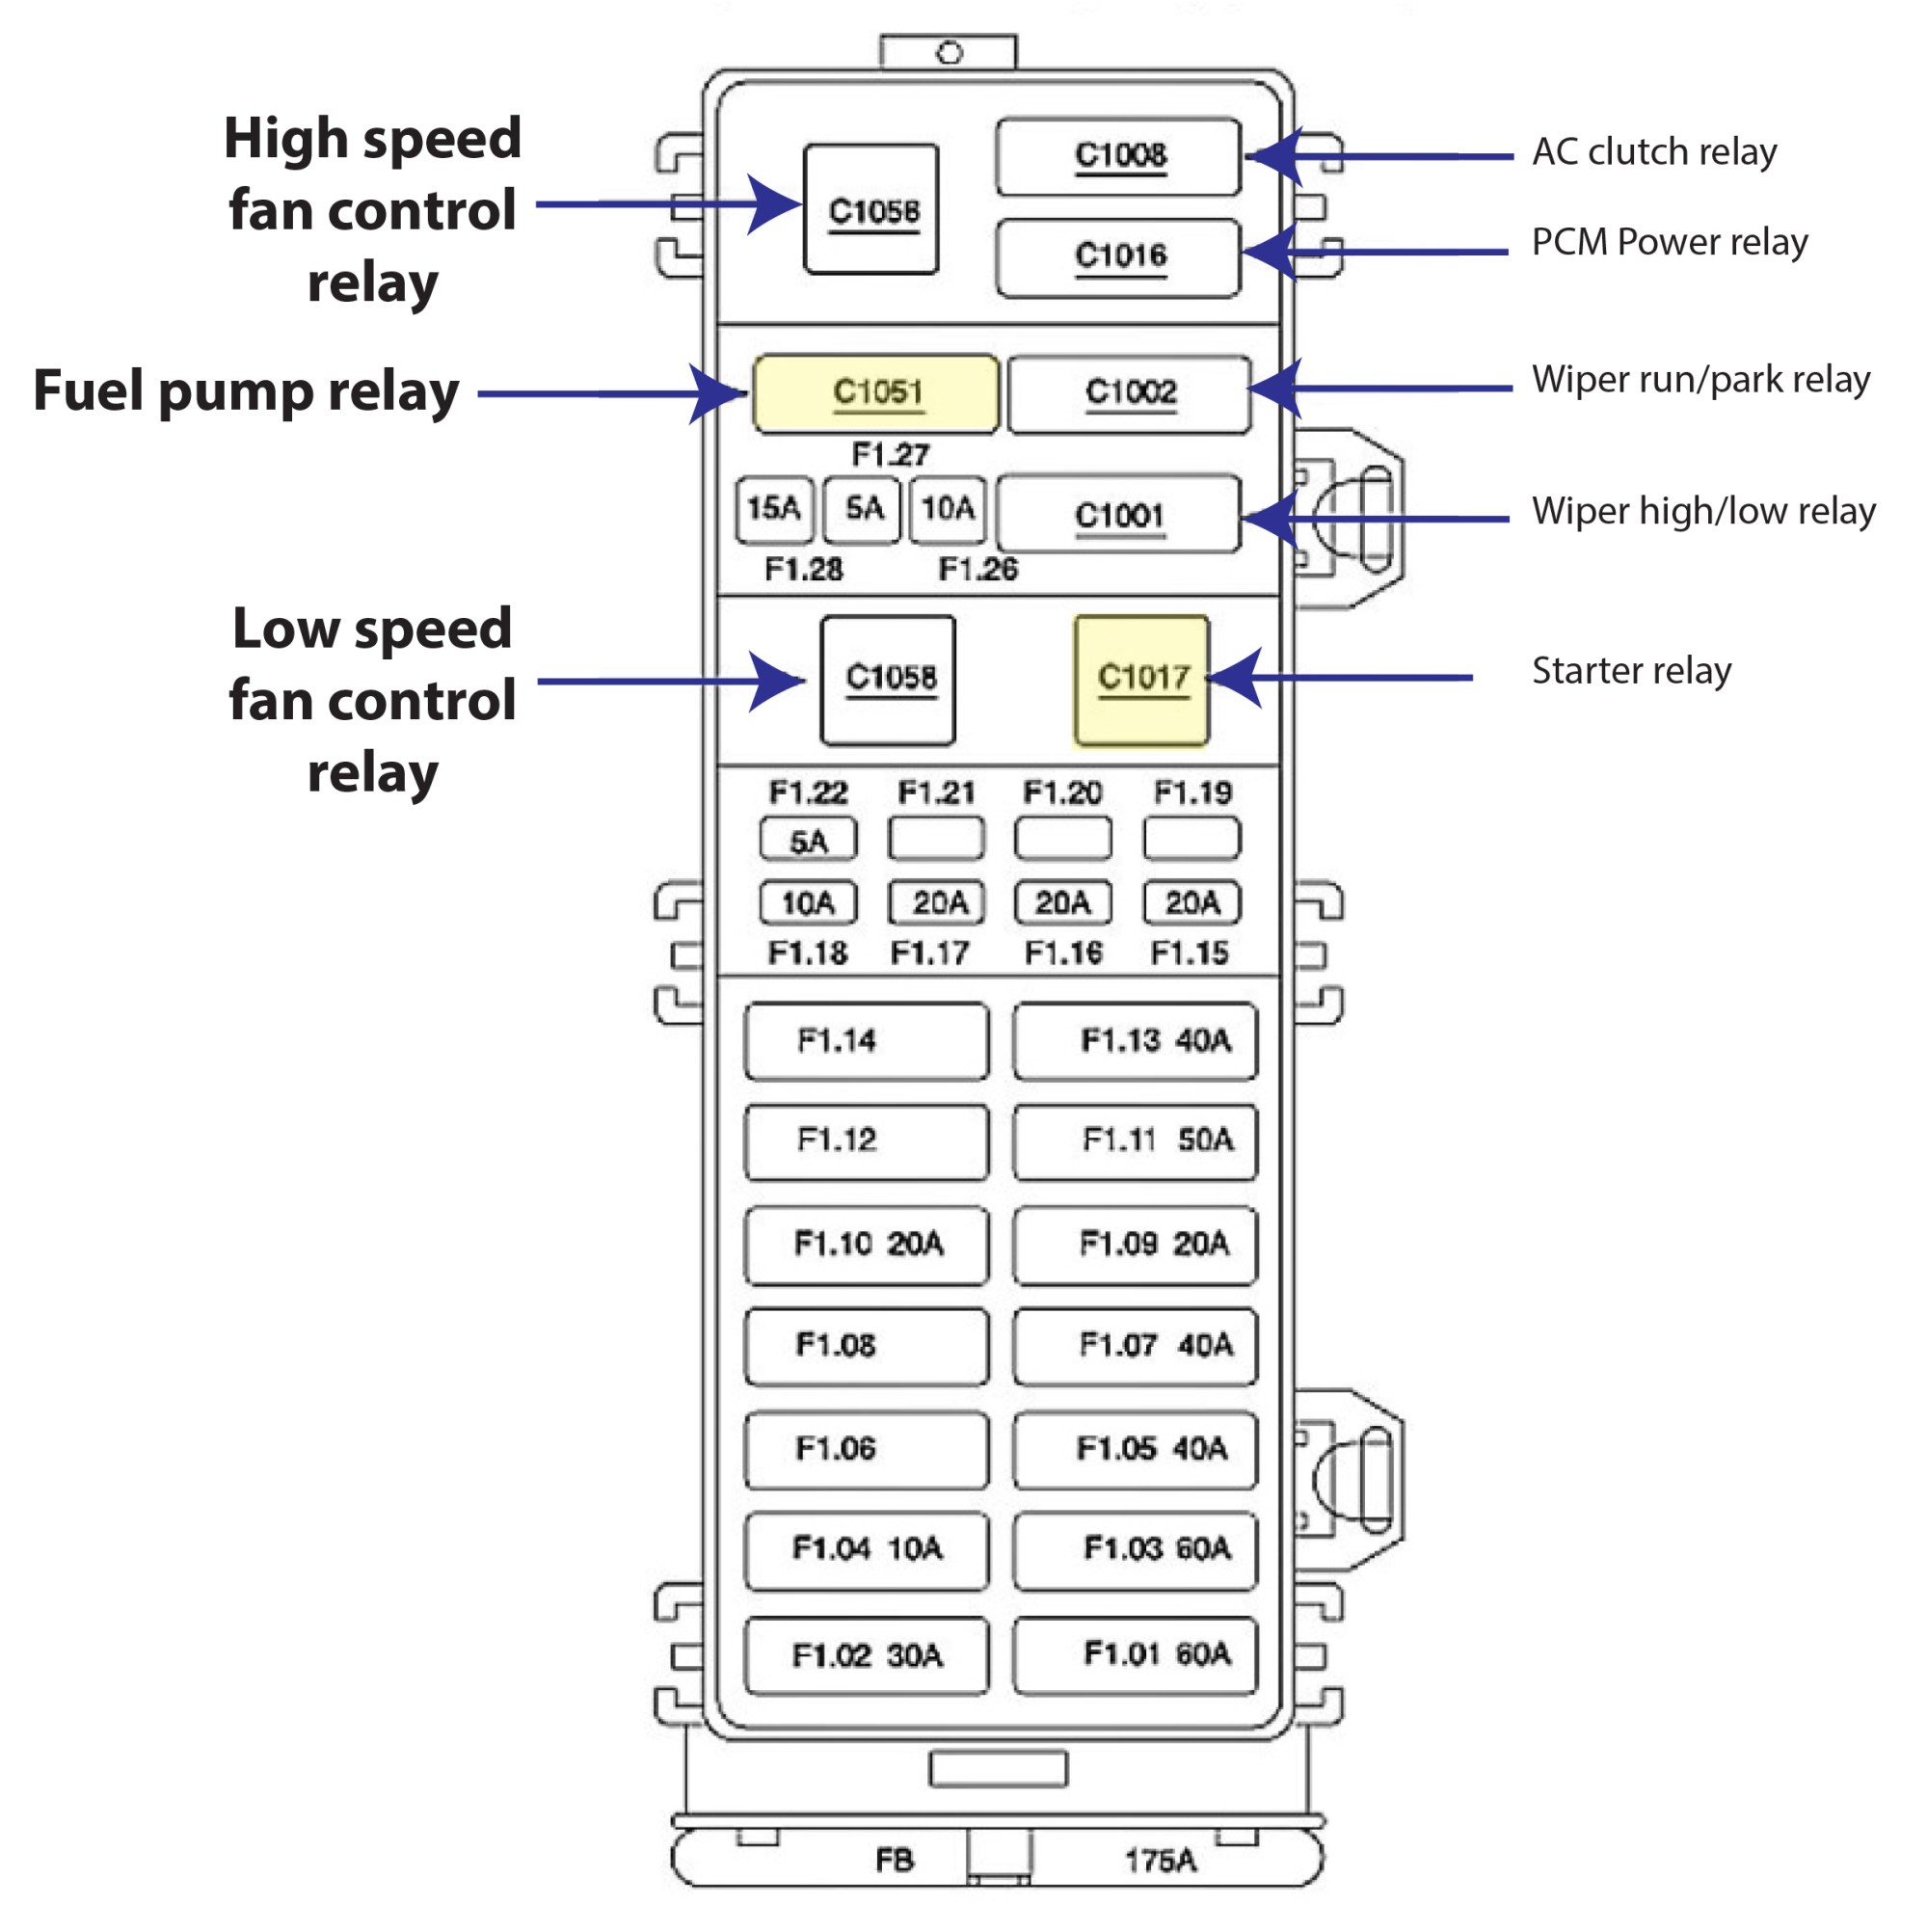 hight resolution of fuse box 02 ford taurus wiring diagram can2002 taurus fuse box wiring diagram list fuse box